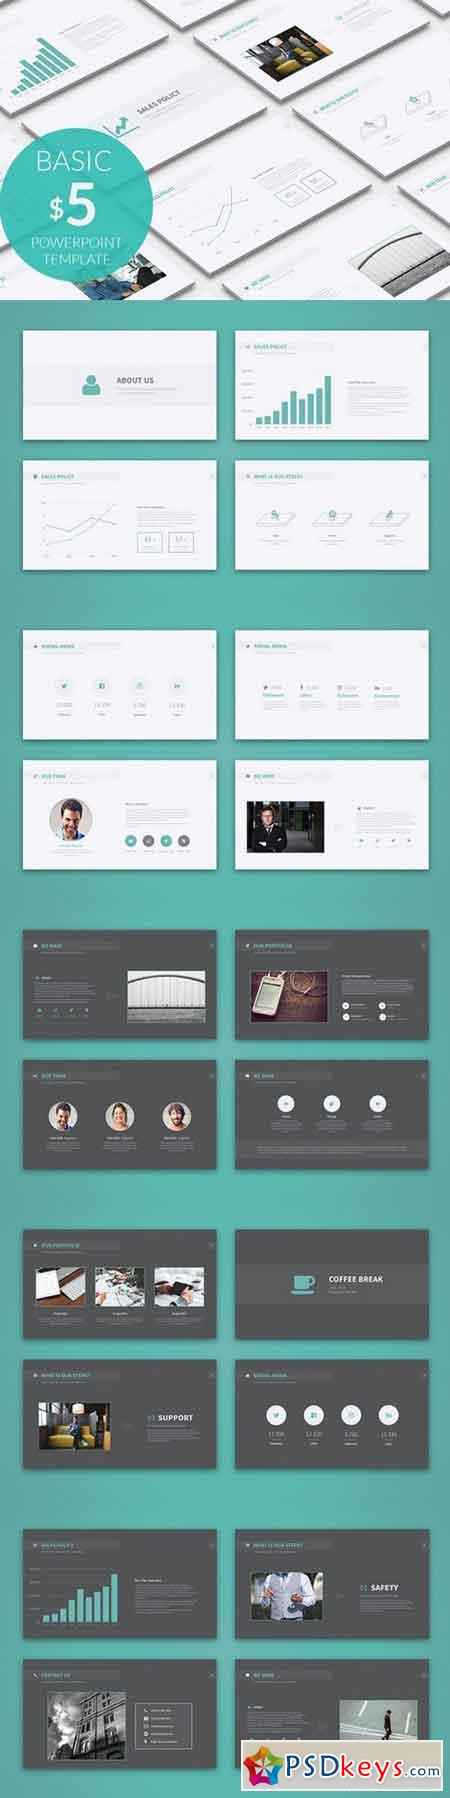 Basic powerpoint template 1020552 free download for Powerpoint templates torrents